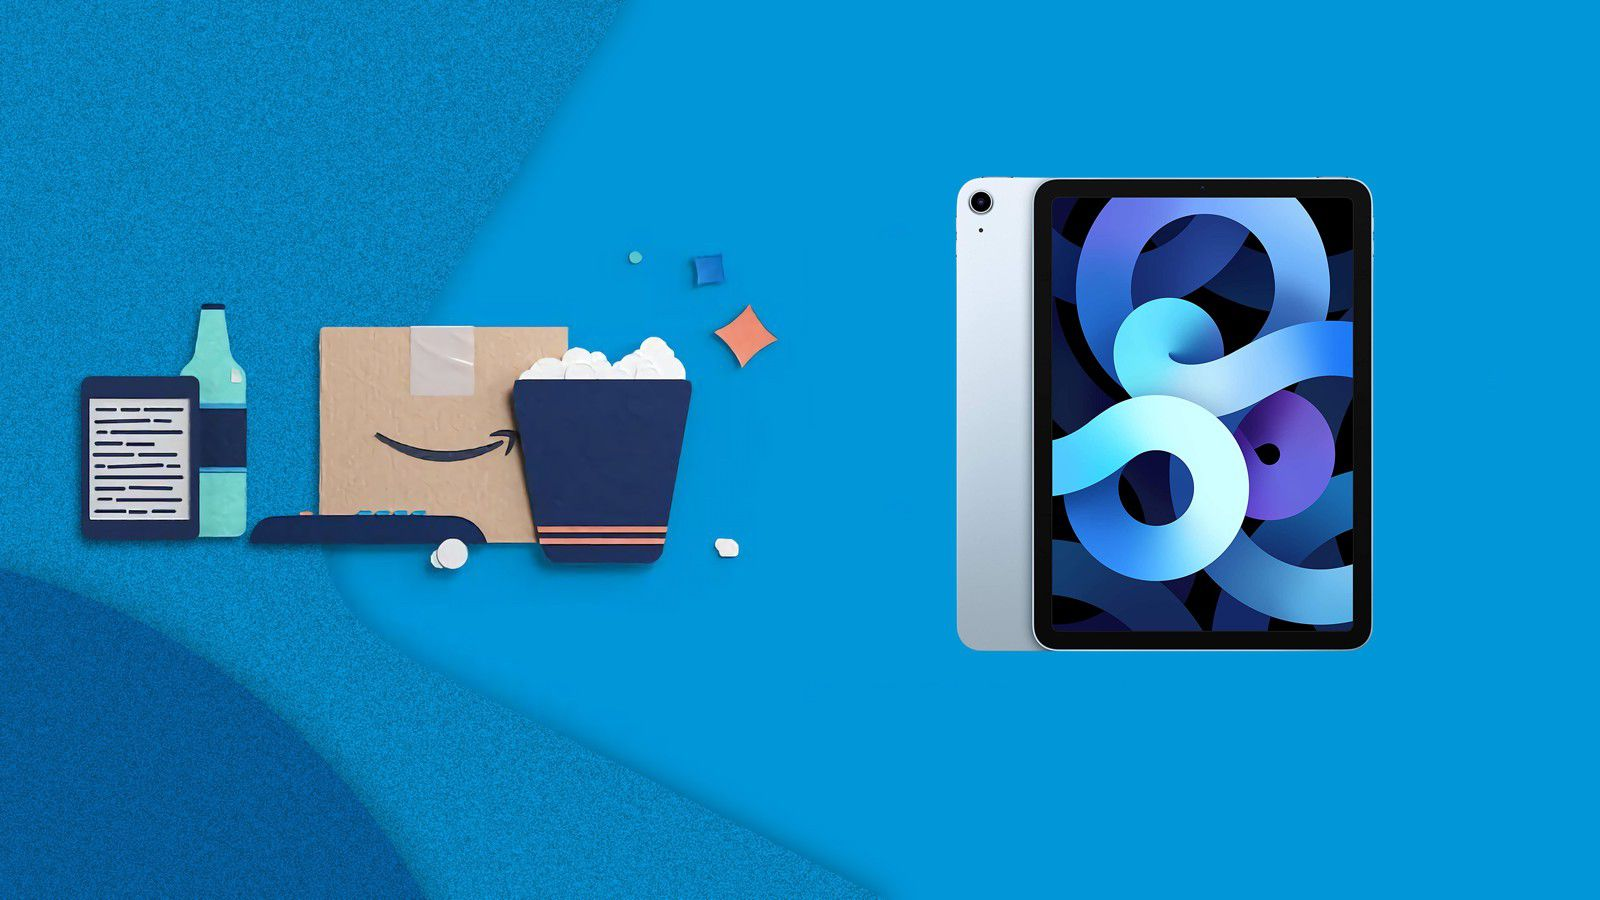 Amazon Prime Day: Apple's 64GB iPad Air Drops to New Low of $519.99 ($79 Off)